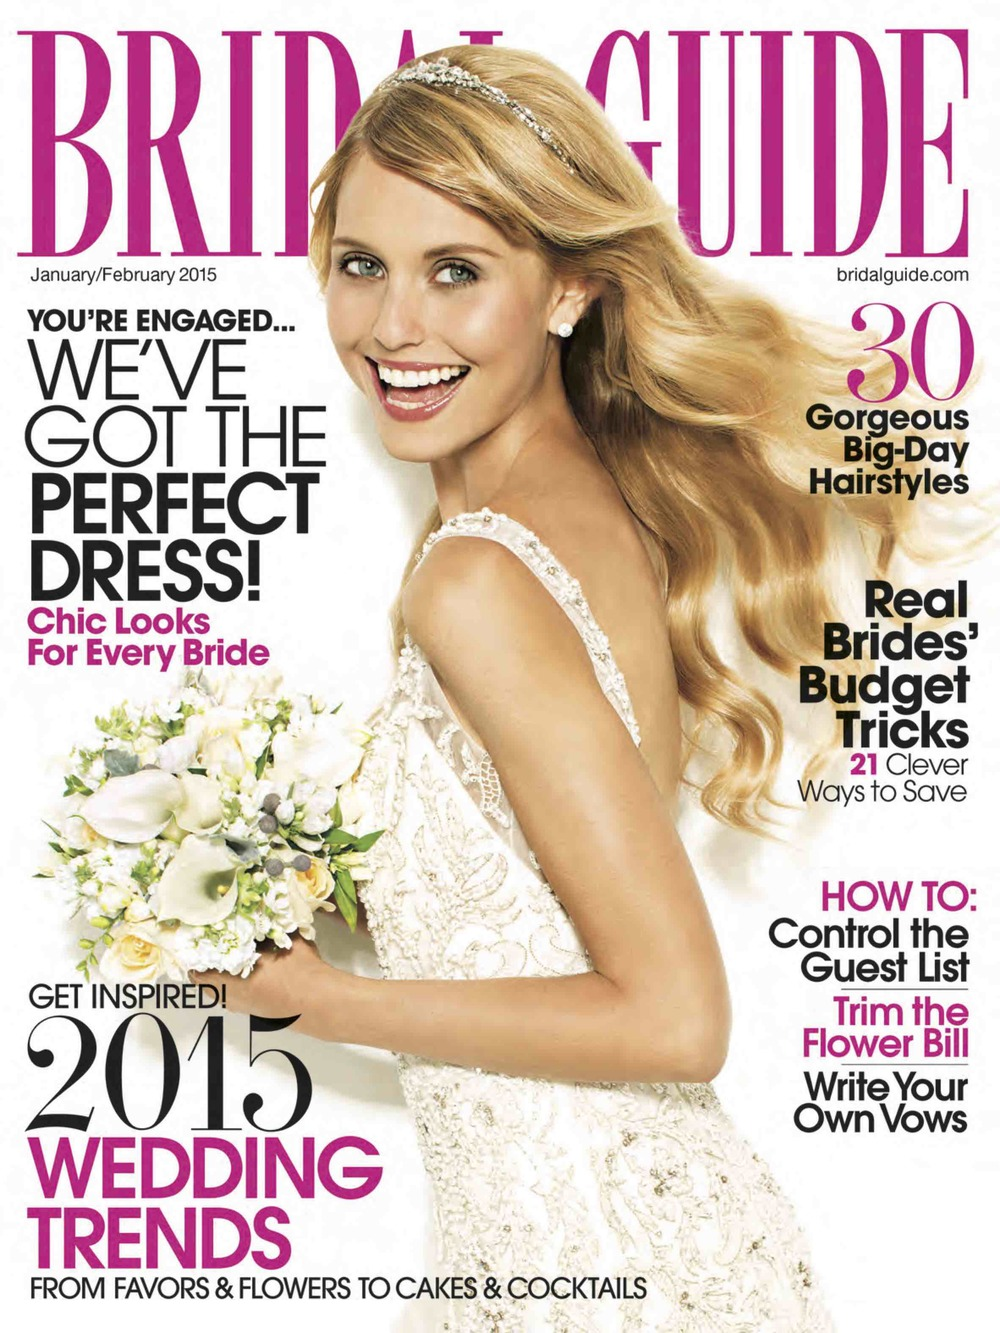 Bridal Guide Cover Jan-Feb 2015.jpg